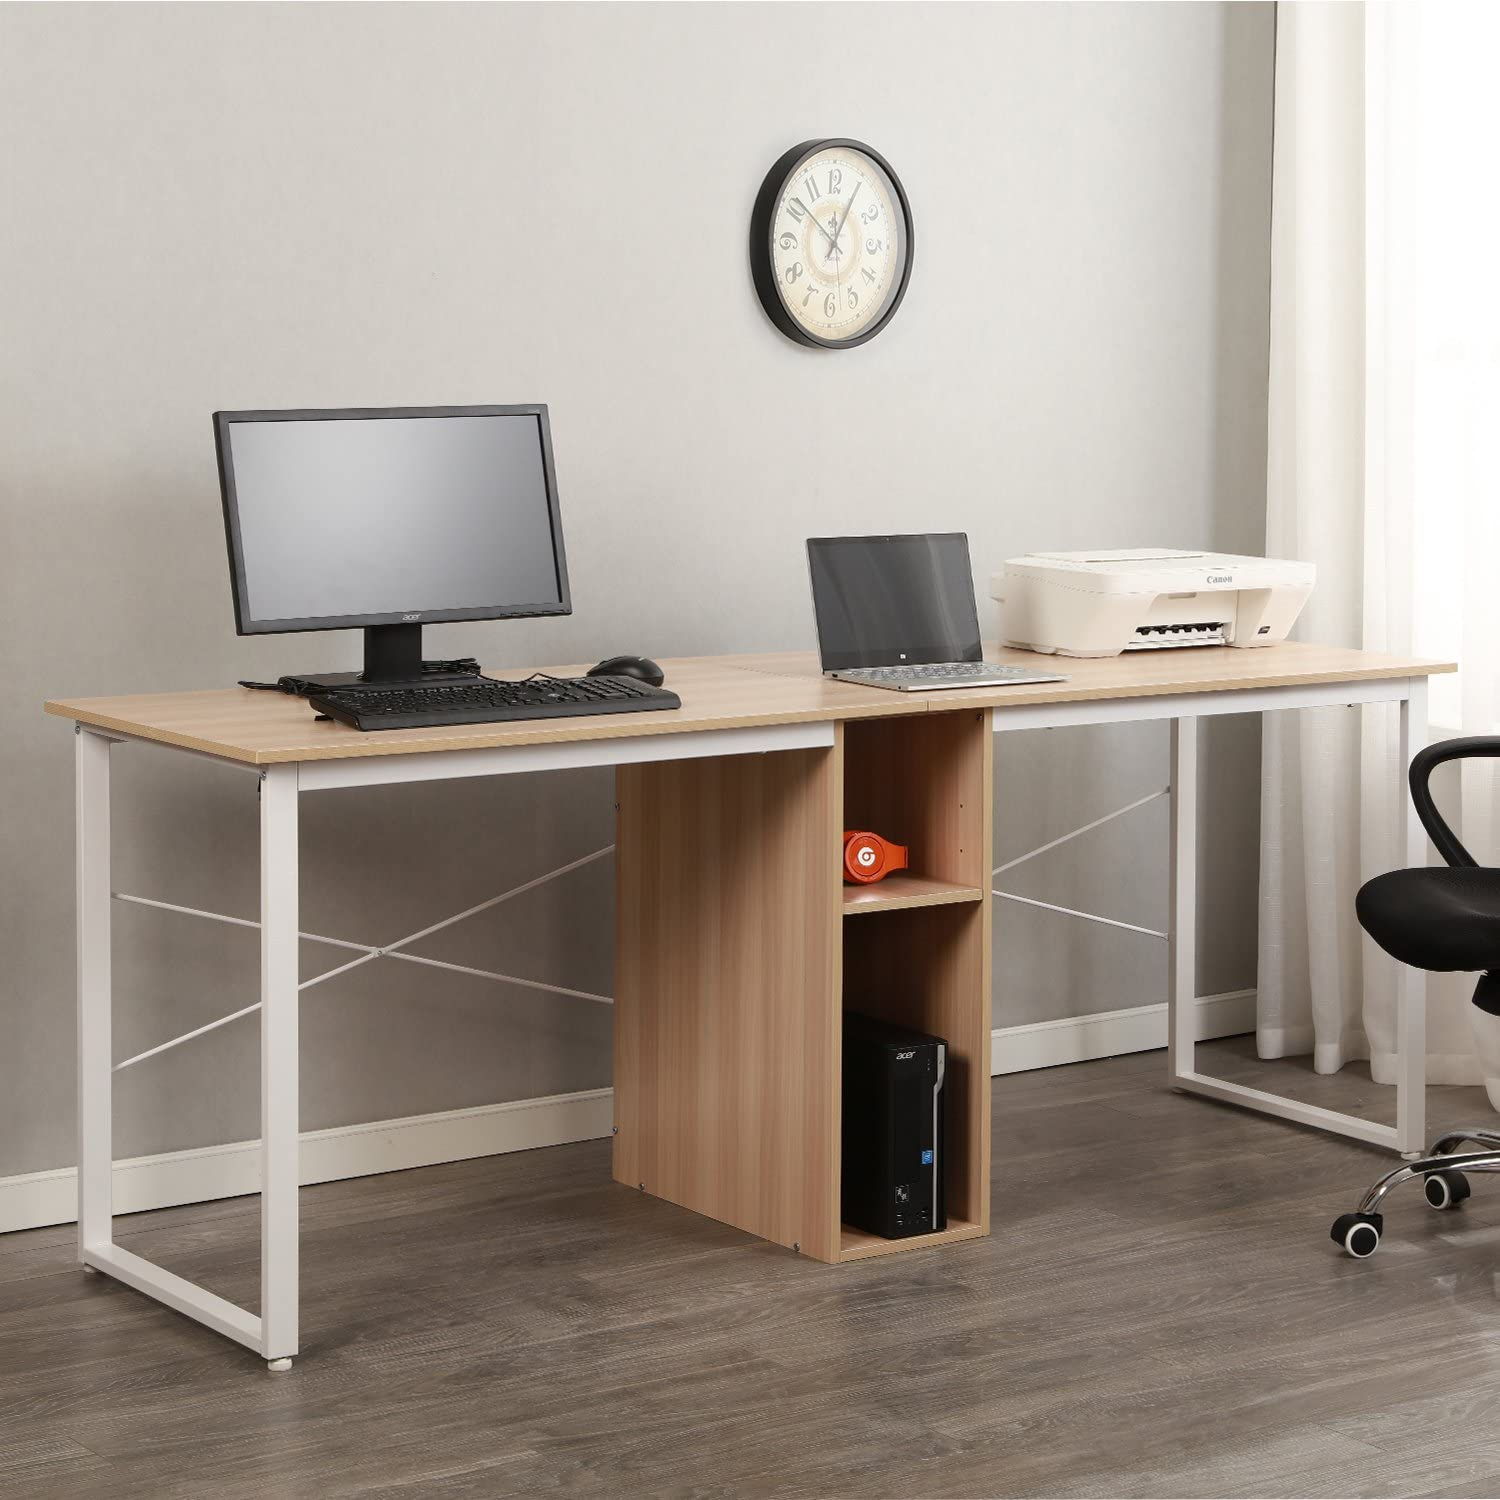 - Amazon.com: DlandHome Double Computer Desk 78 Inches Extra Large